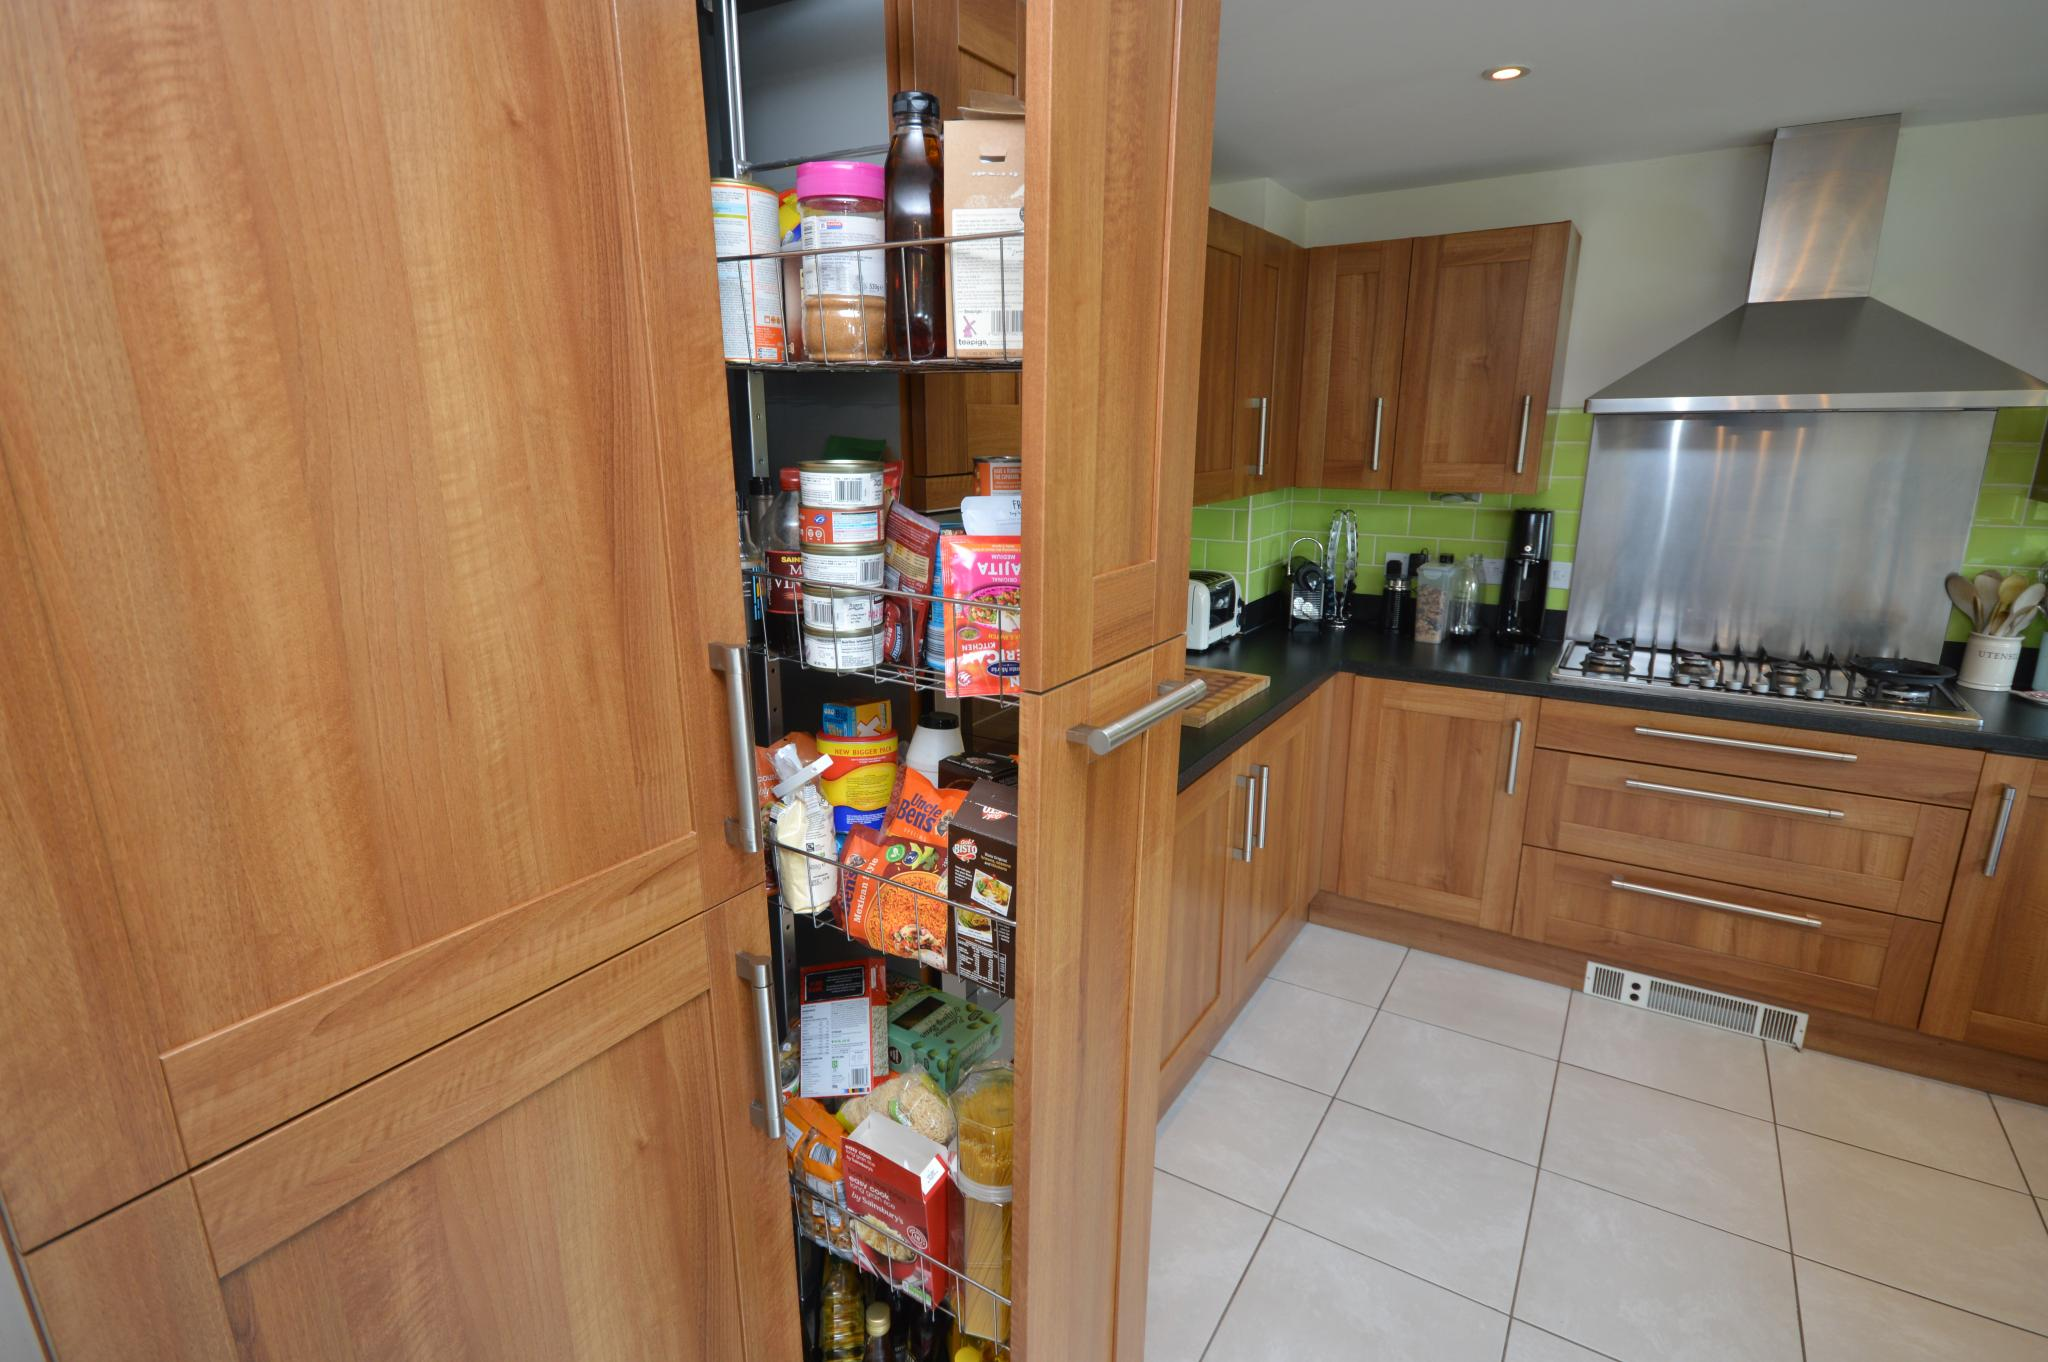 Last Chance To Buy Paula Rosa 👪 Family Shaker Used Kitchen Aeg Appliances Wiltshire Used Kitchen Exchange